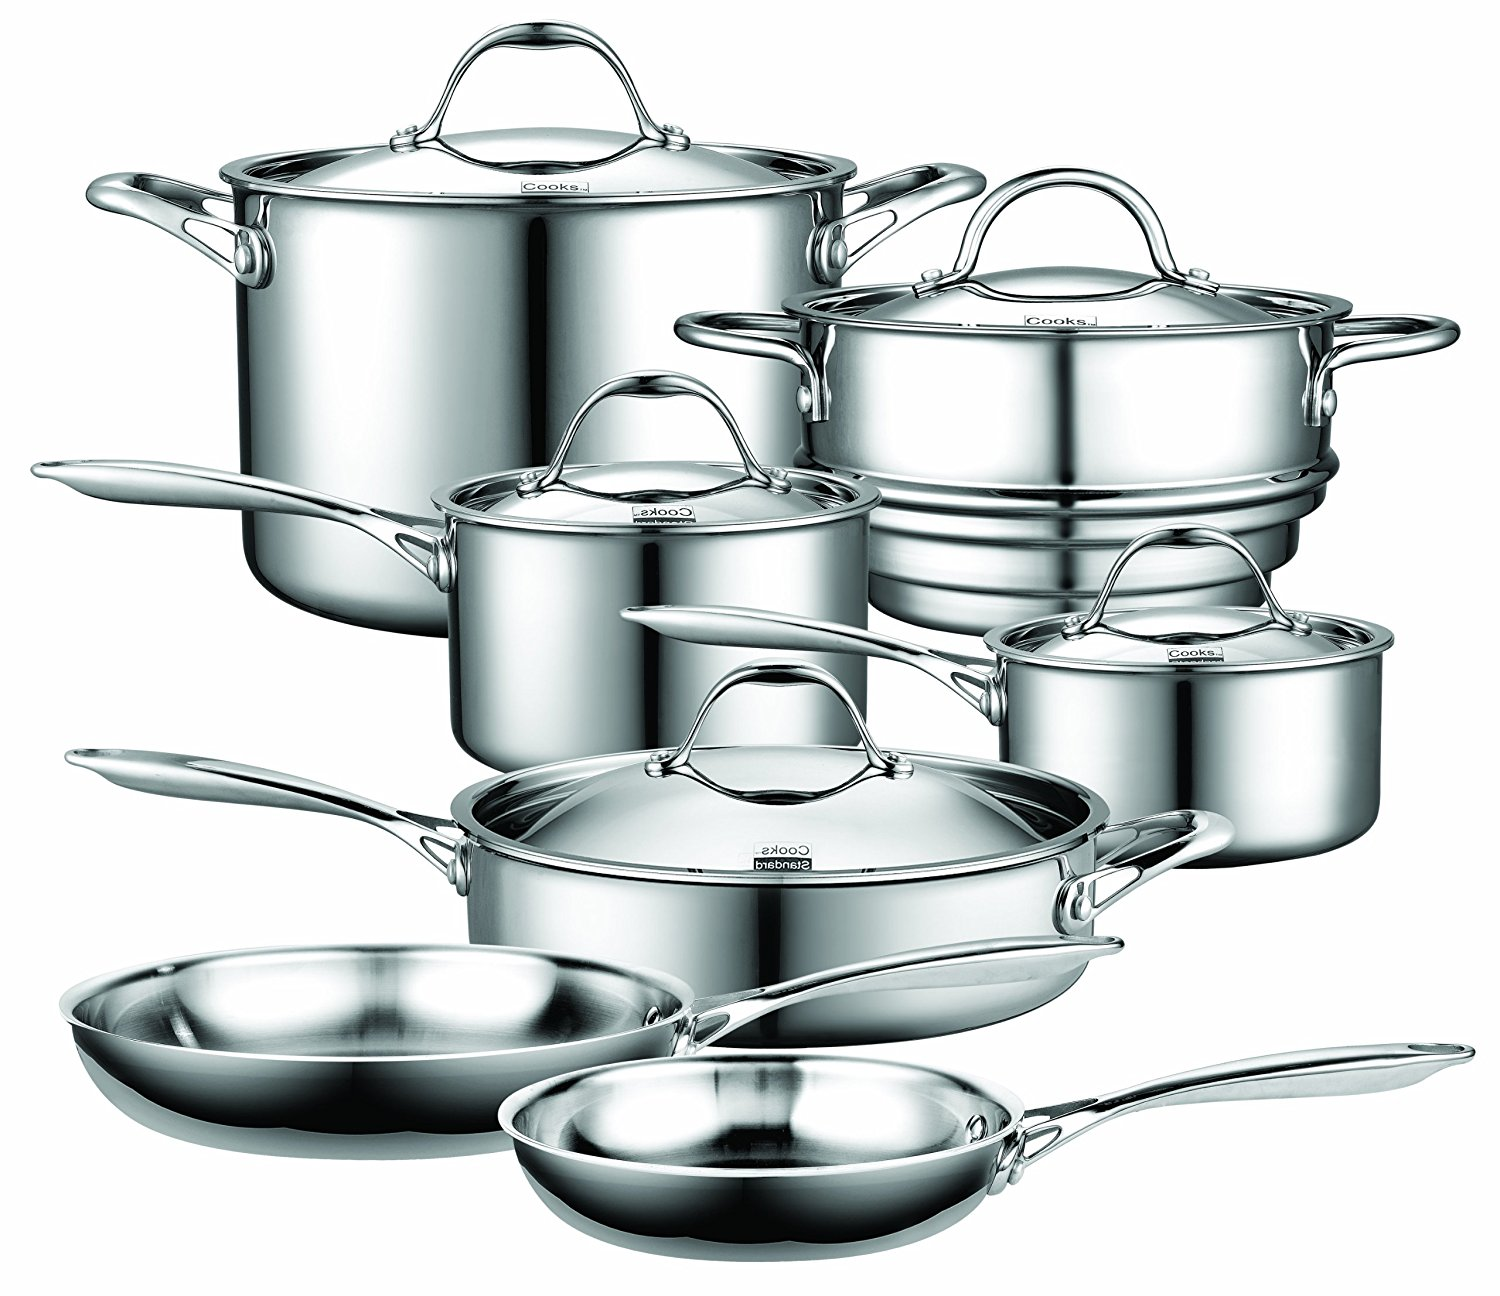 Cooks Standard 10 Piece Multi-Ply Clad Cookware Set